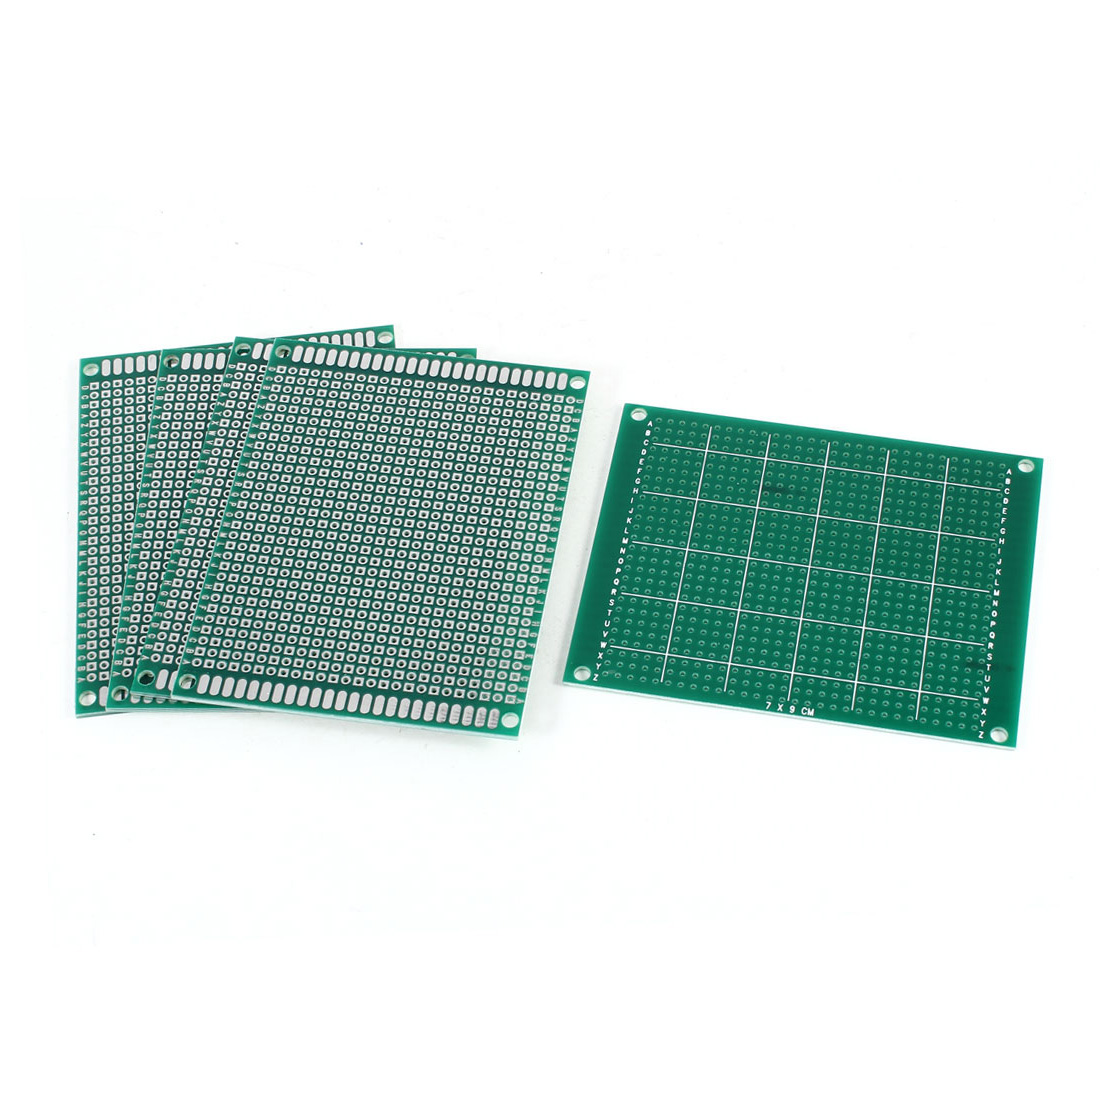 5Pcs DIY Universal Single Sided Protoboard Glass Fiber Prototyping PCB Printed Circuit Board 7cm x 9cm